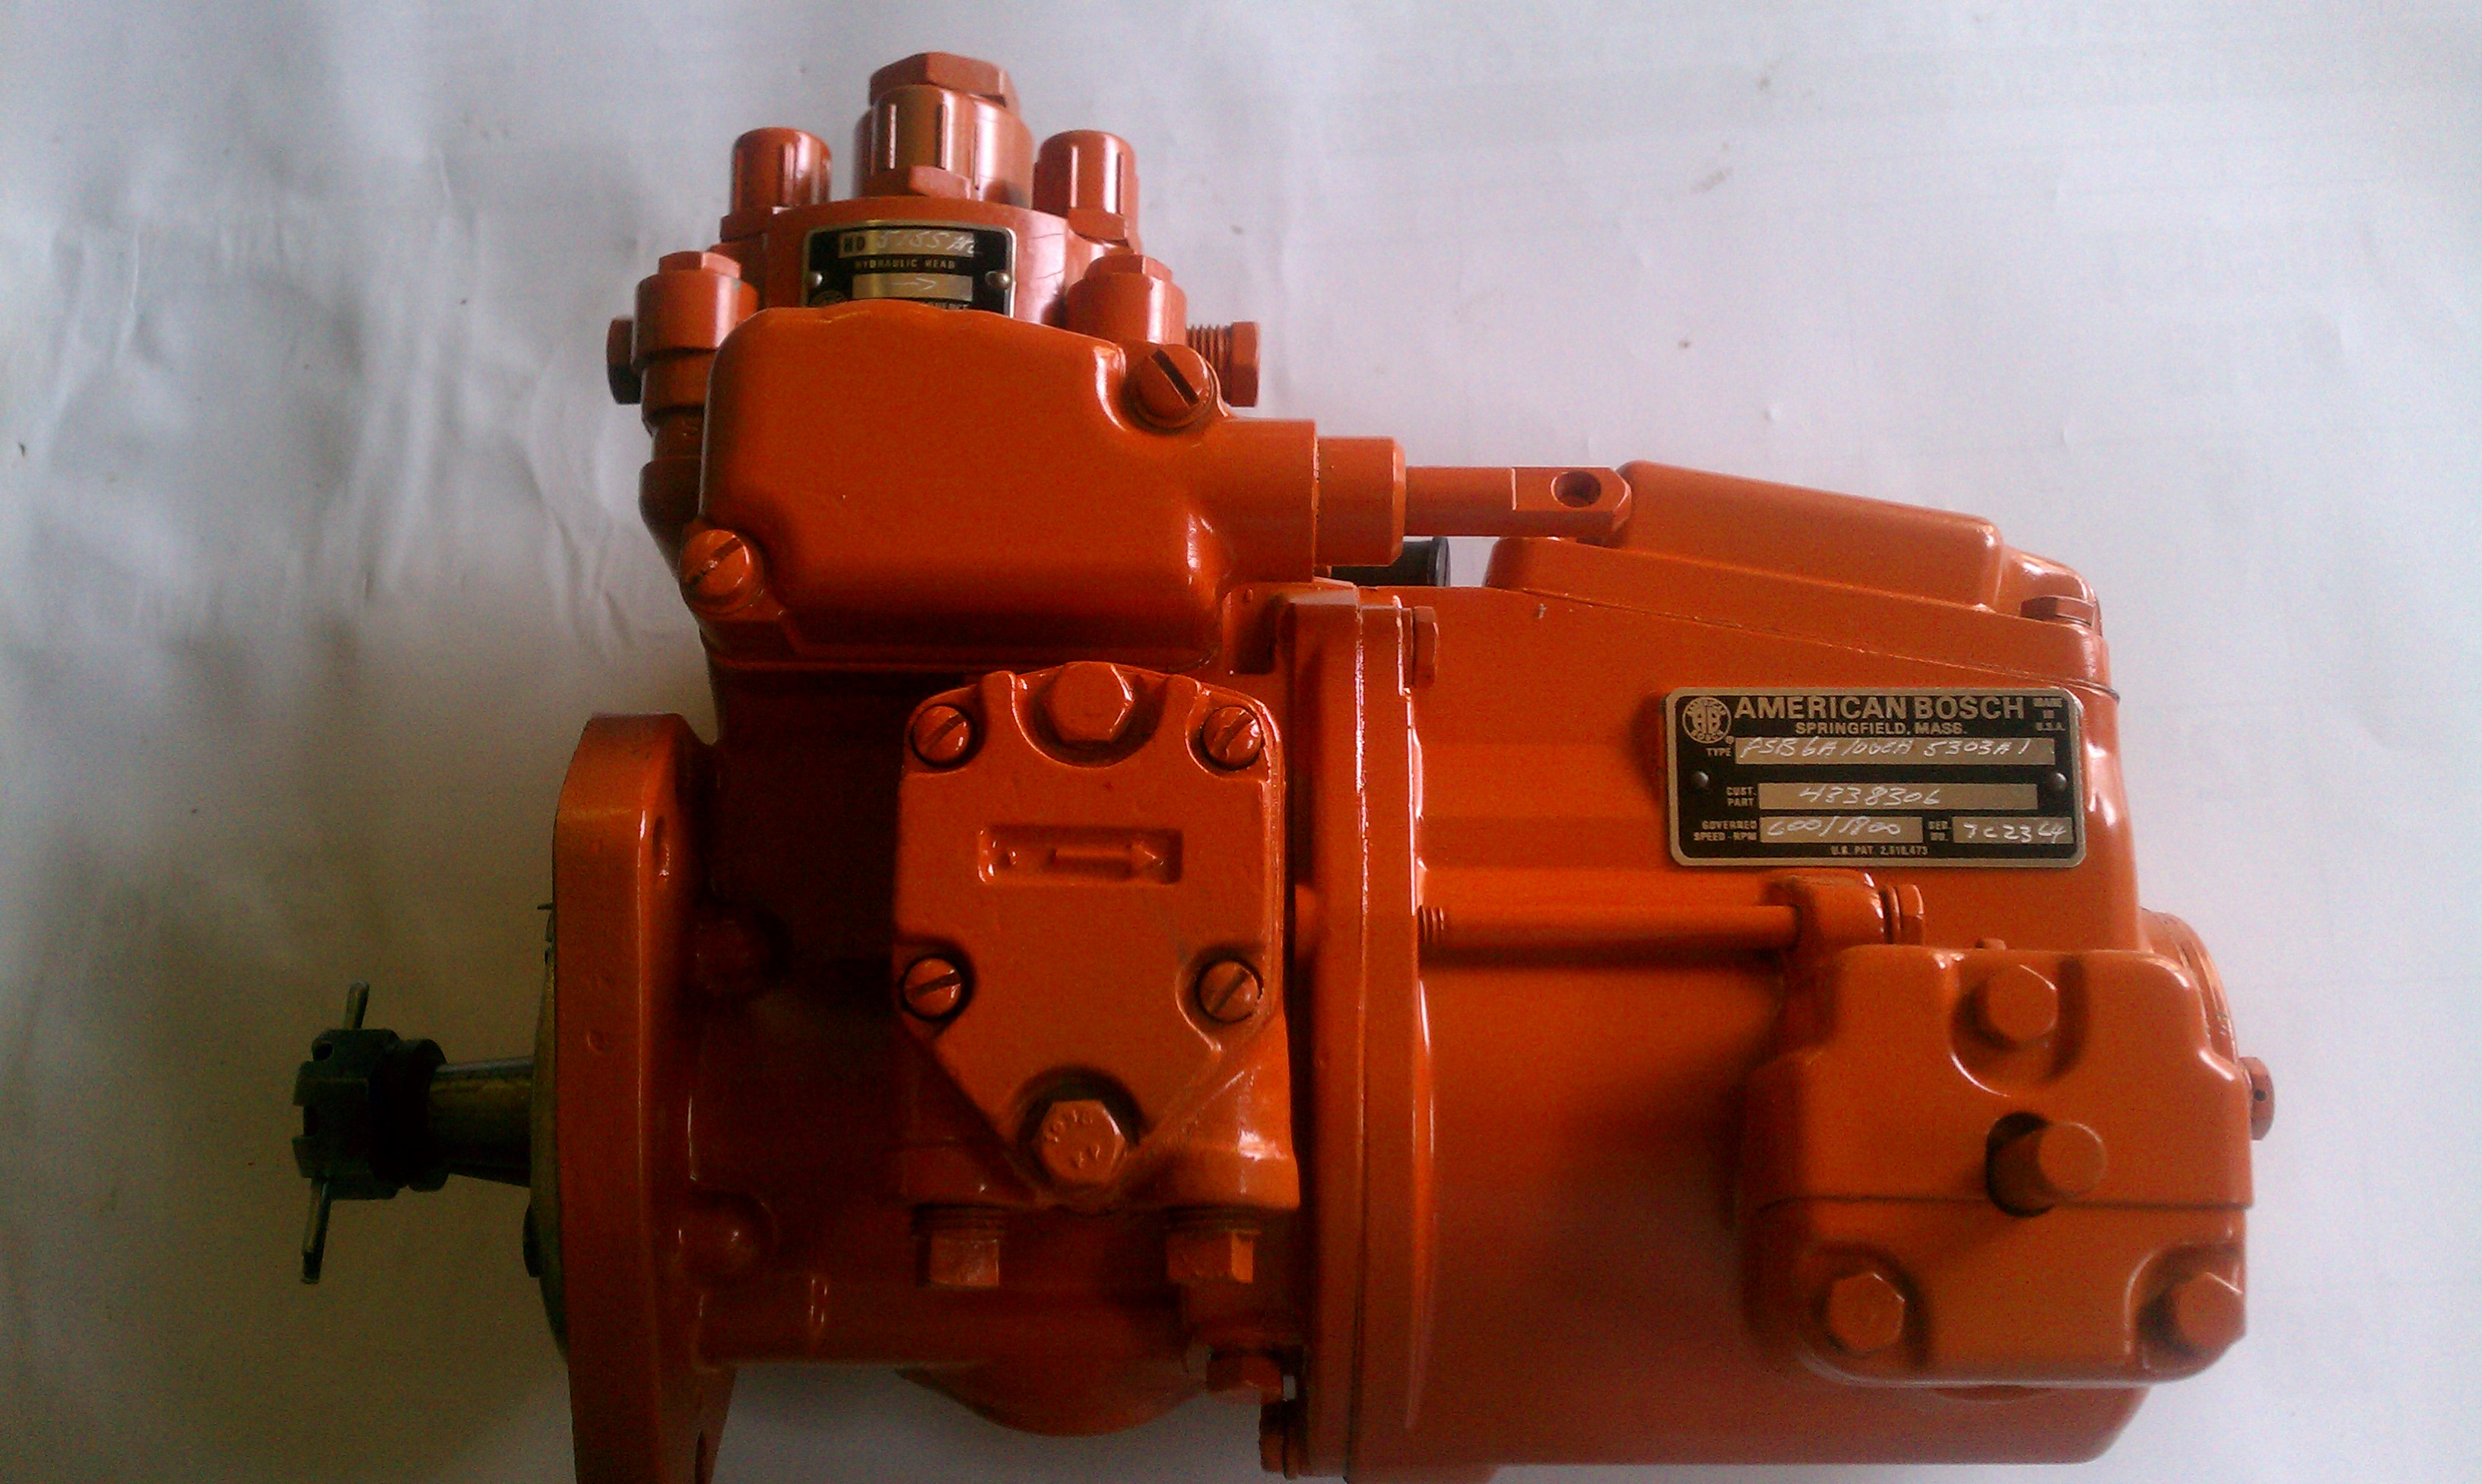 American Bosch Psb Pump on Allis Chalmers Generator Engines